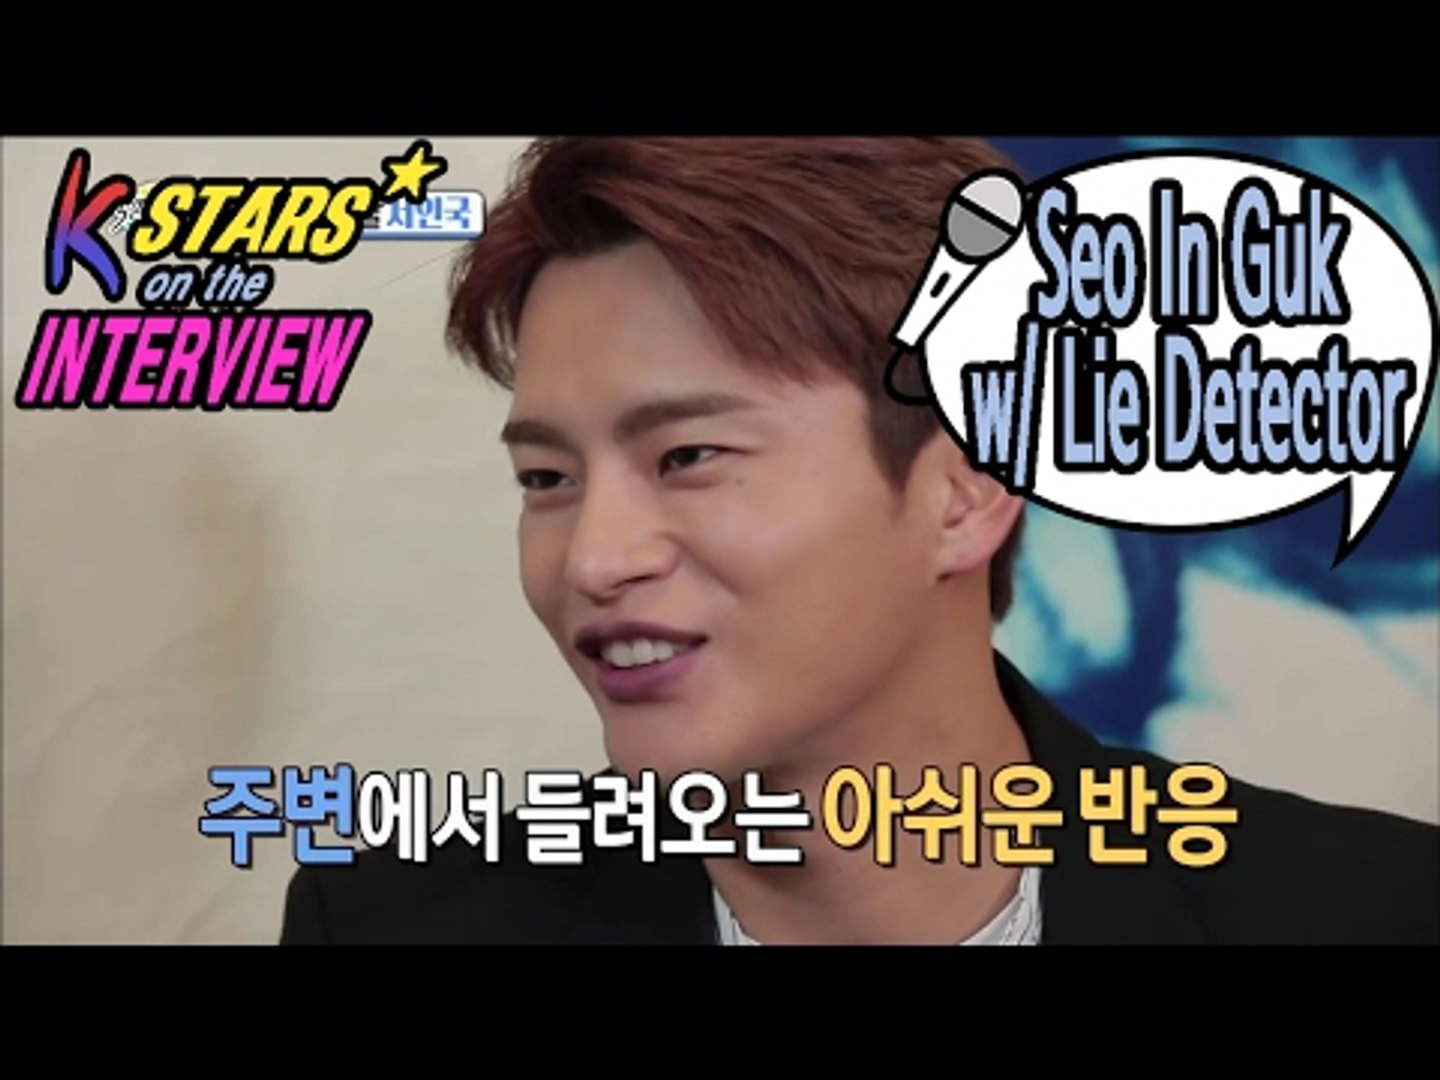 [CONTACT INTERVIEW★K-STAR] Interviewee 'Seo In guk' w/ Lie Detector 20170205